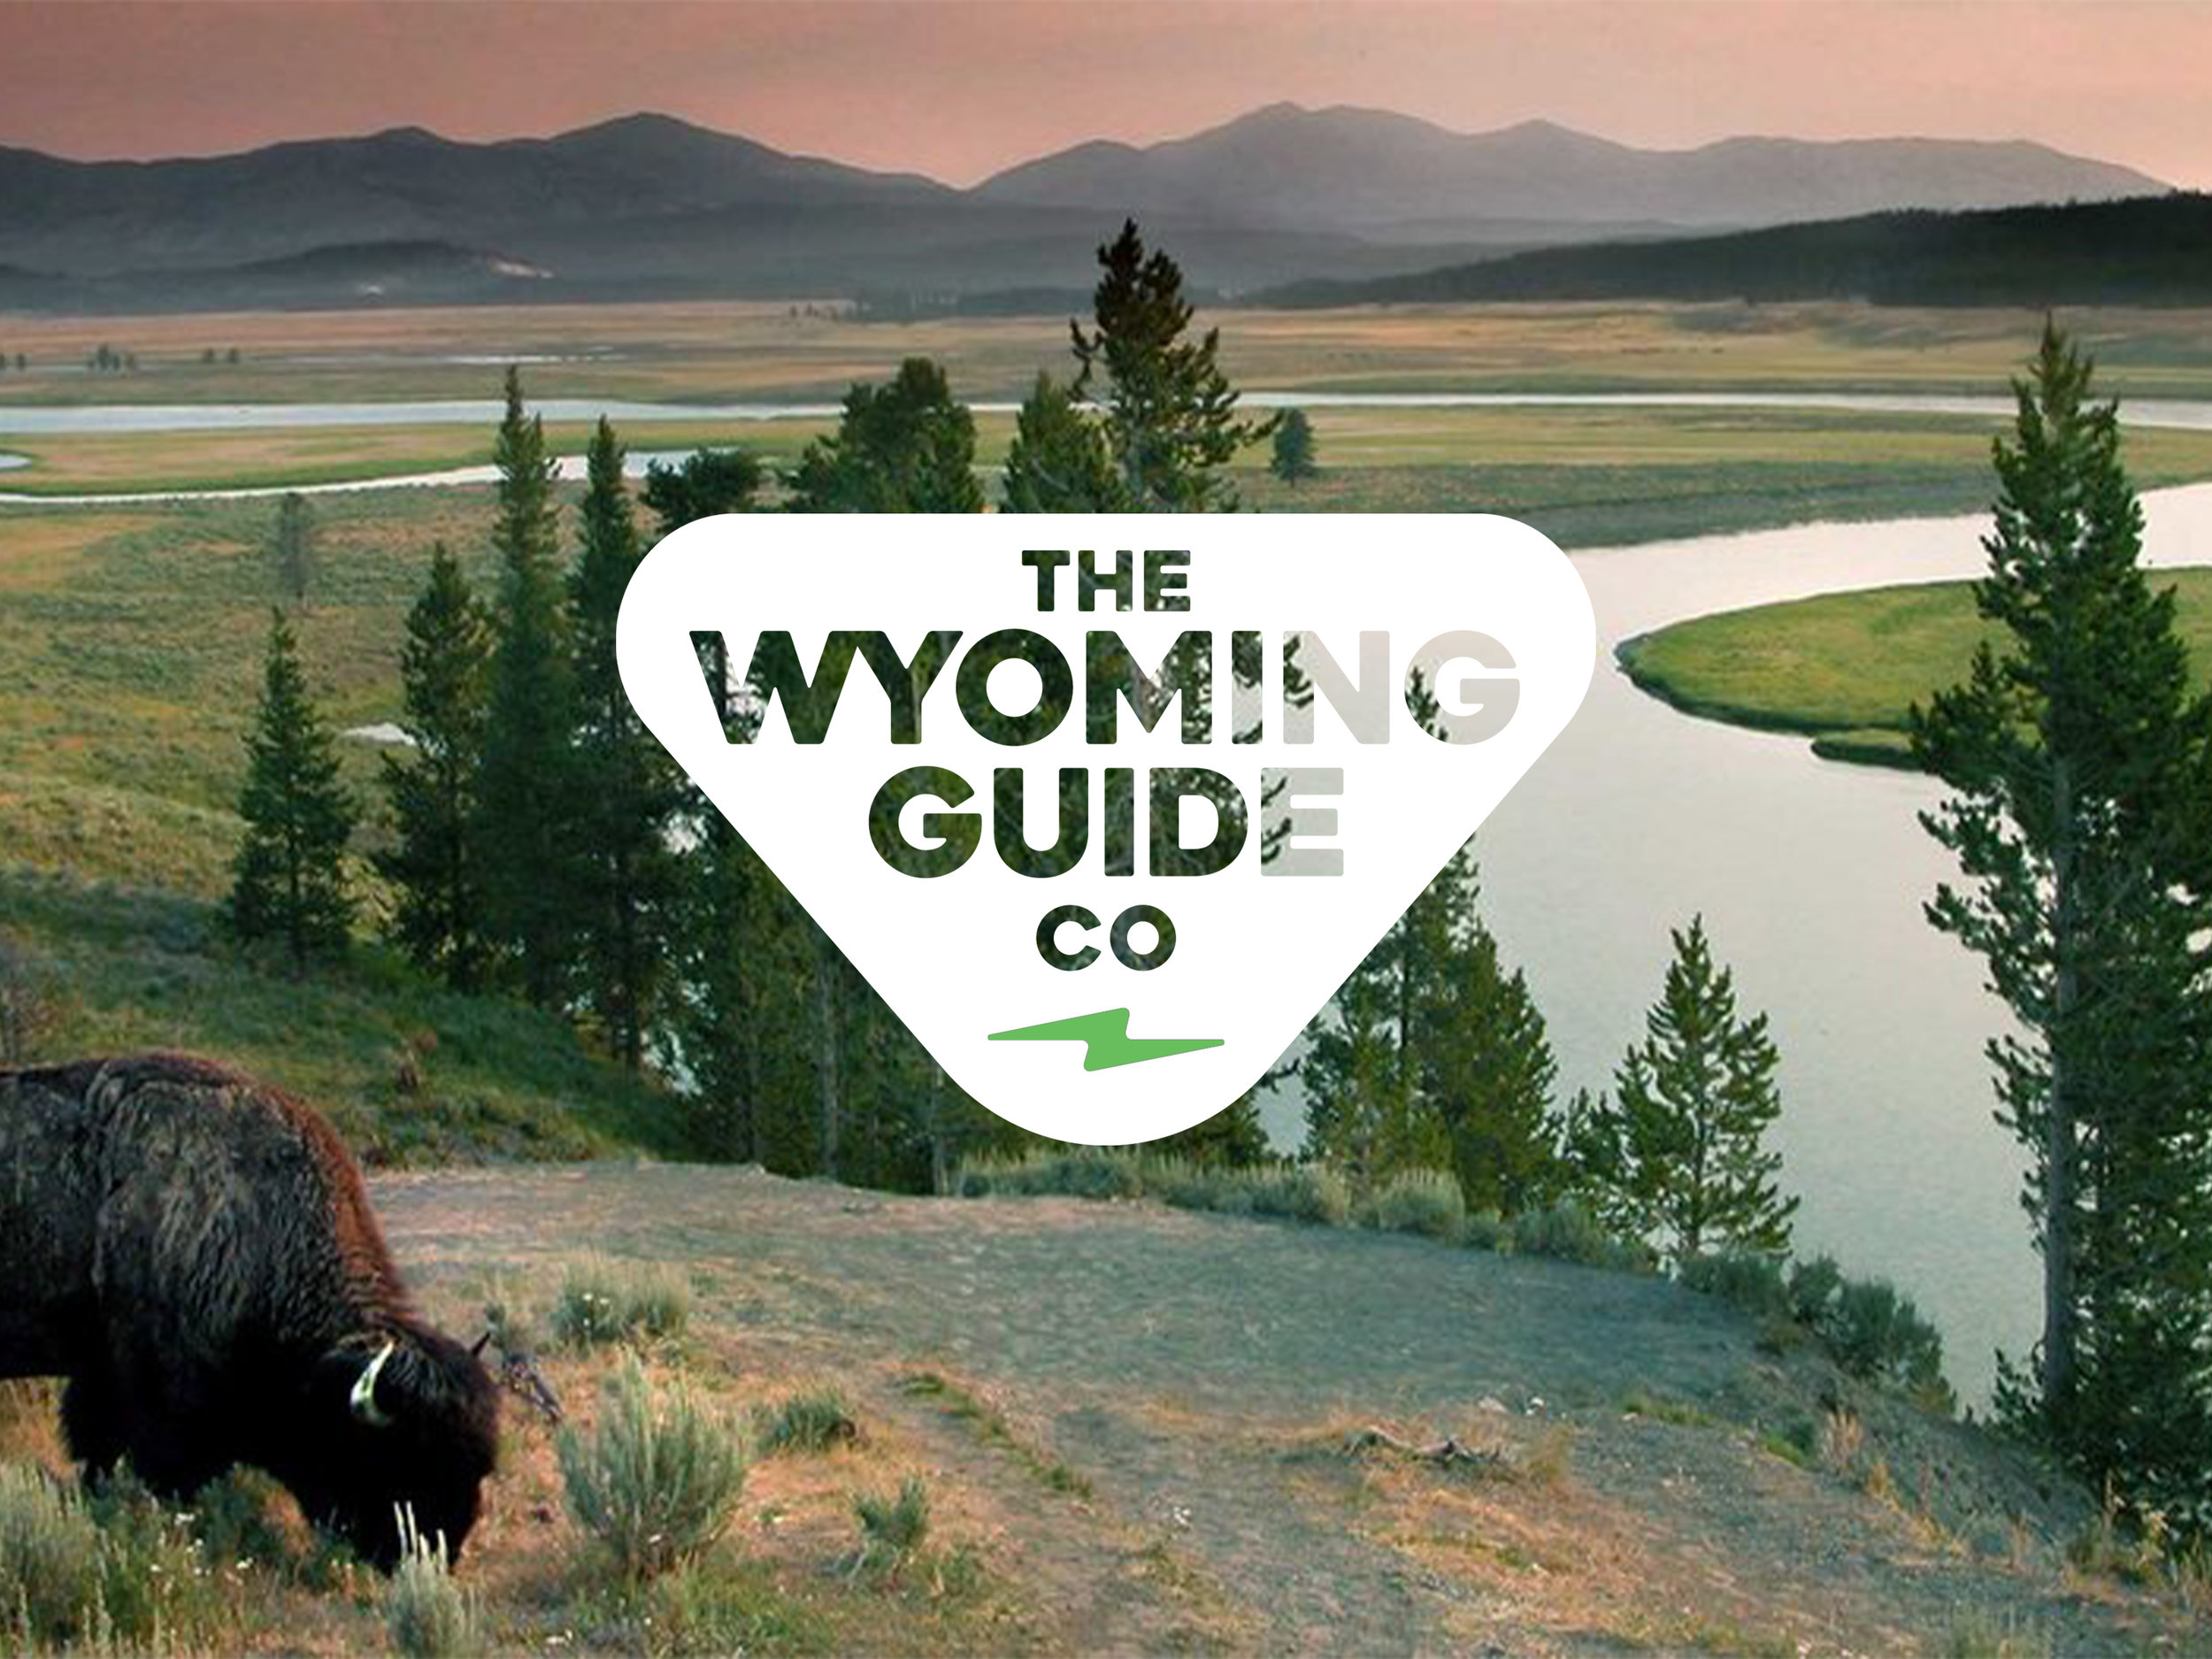 THE WYOMING GUIDE CO - If you're looking to go fly fishing or on a wildlife adventure, check out The Wyoming Guide Co. You'll have a private, curated, and memorable experience.VISIT SITE